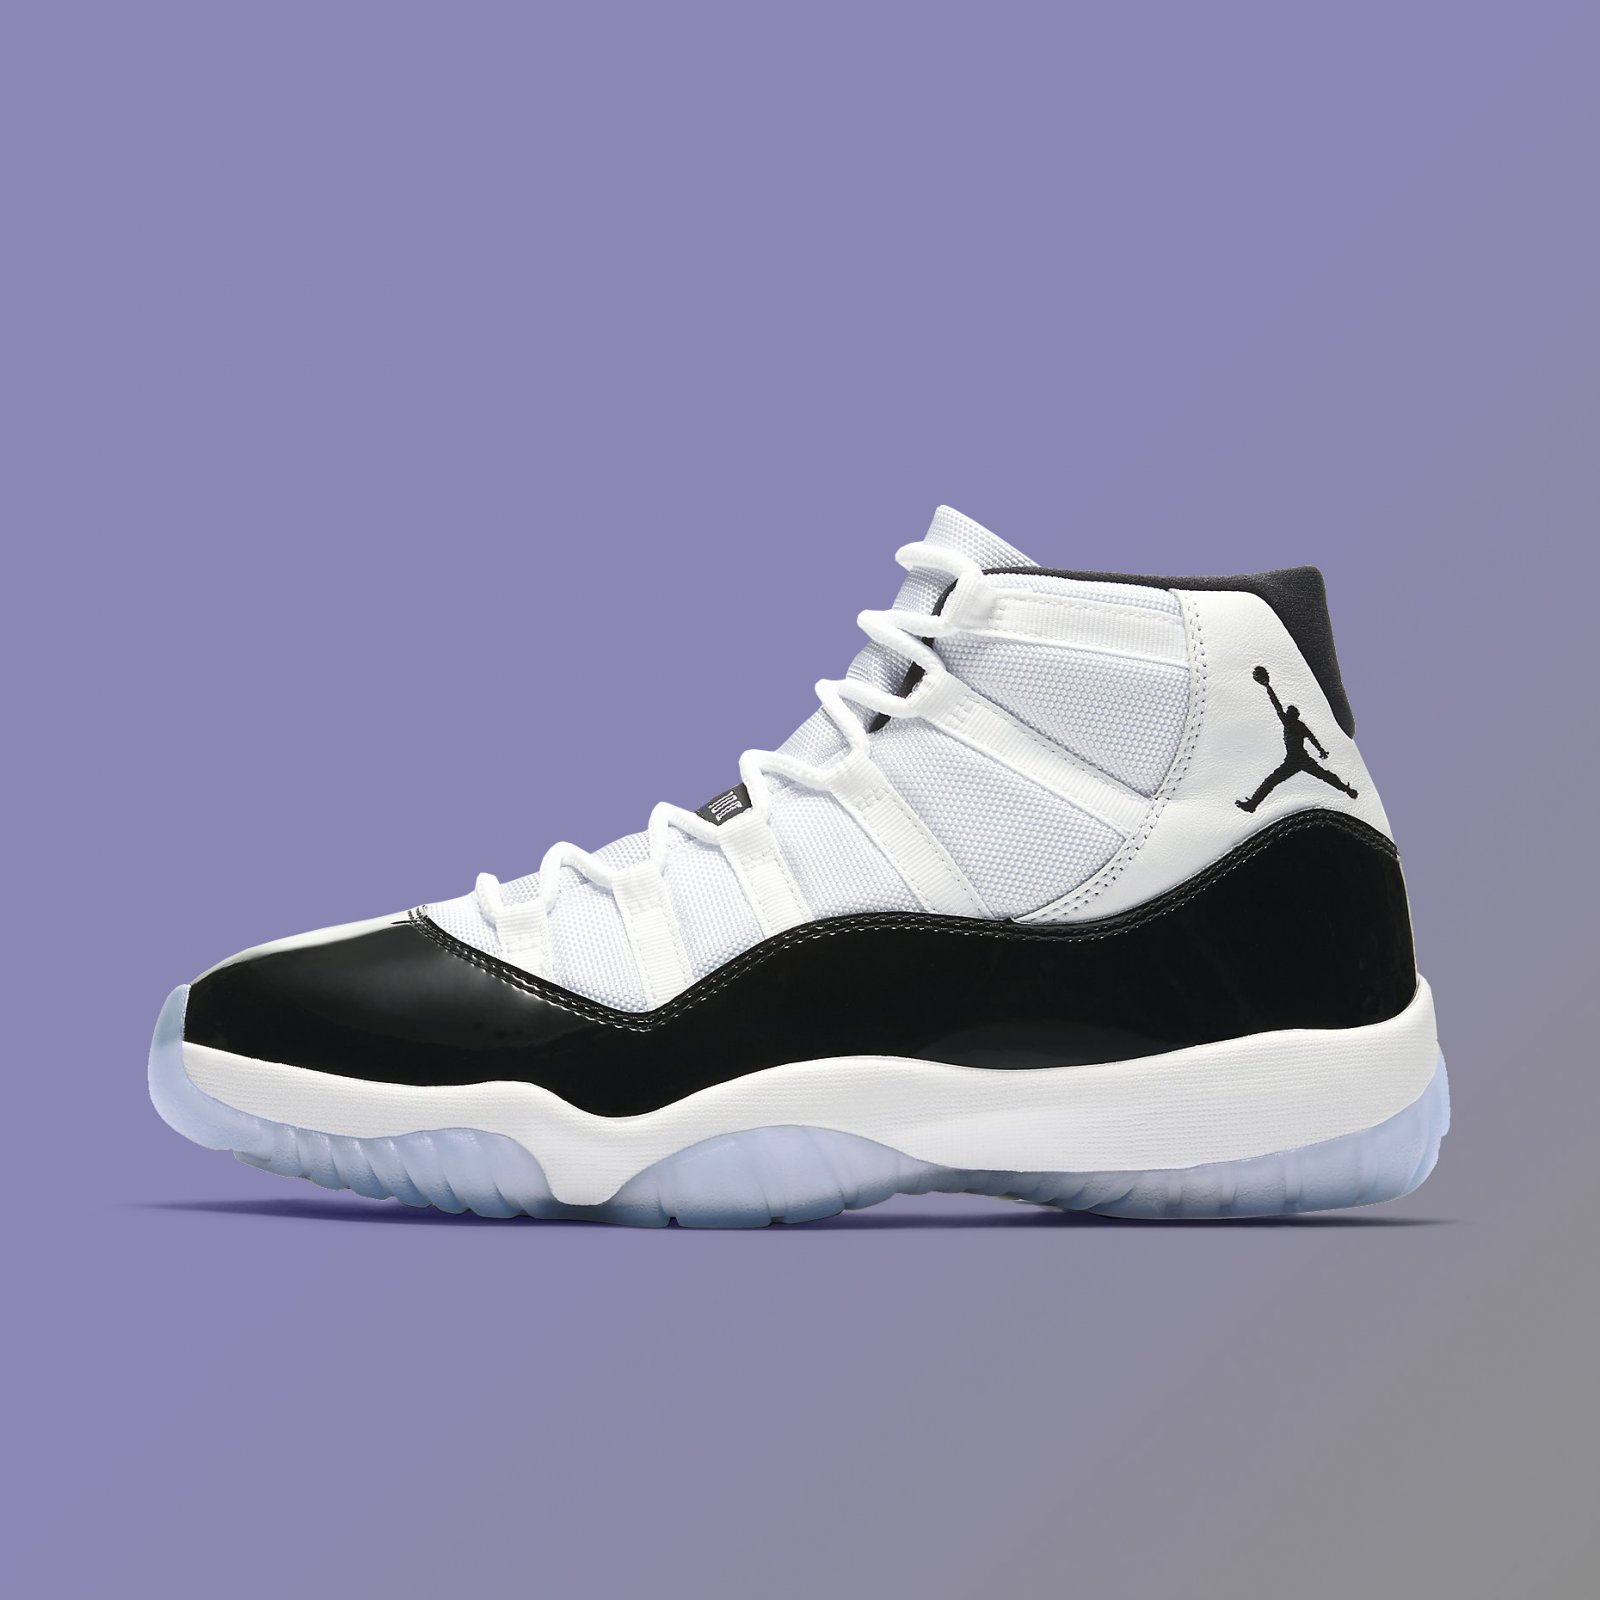 newest 79bdd 9618a Details about Air Jordan 11 Retro White Concord Black 2018 OG XI Nike Men s  Kid s Sneakers DS